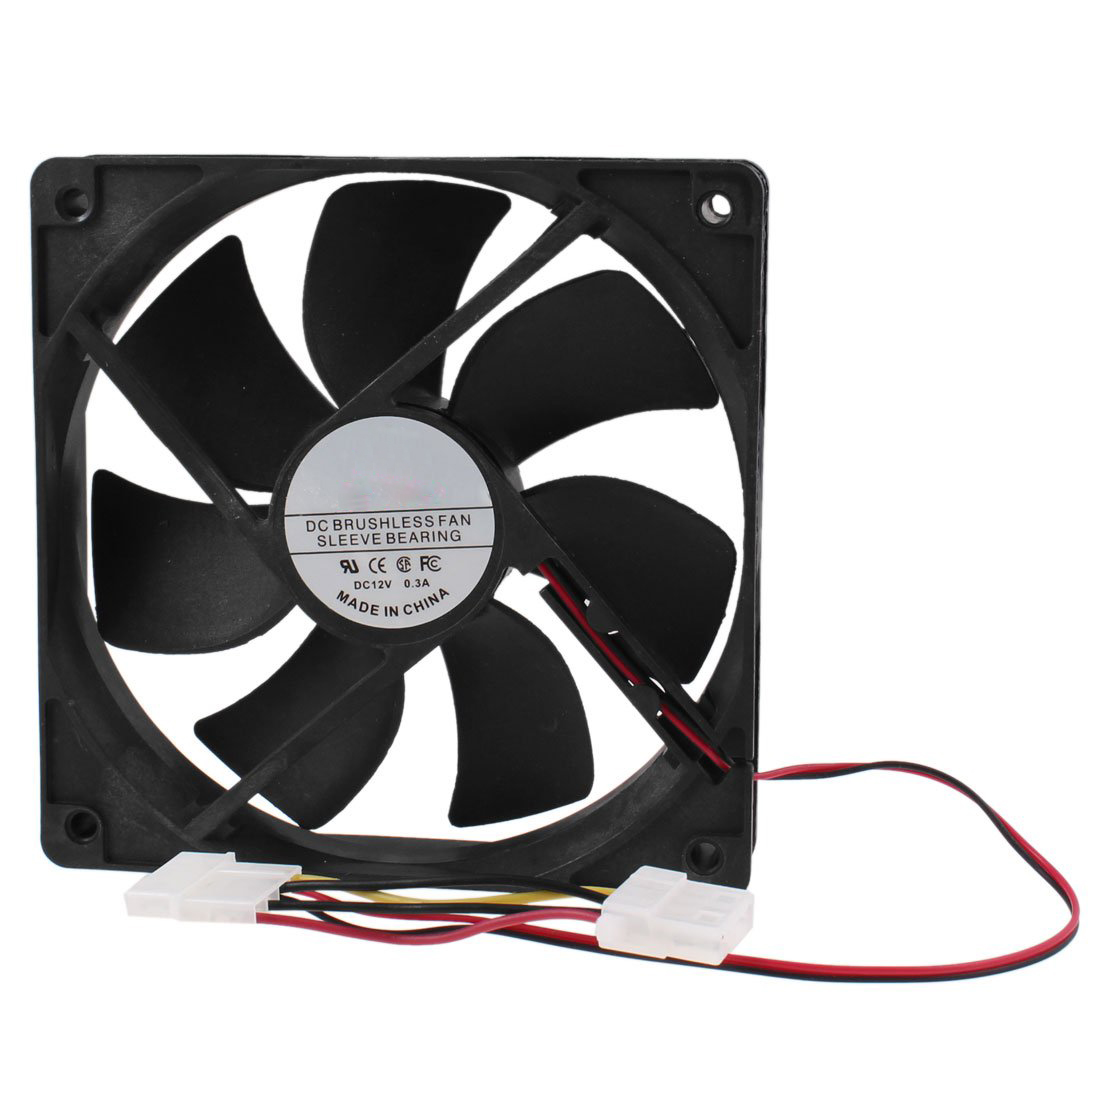 PC Brushless DC Cooling Fan 4 Pin Connector 7 Blades 12V 12cm 120mm 5010s dc 12v 0 1a brushless cooling fan 4 2cm diameter page 4